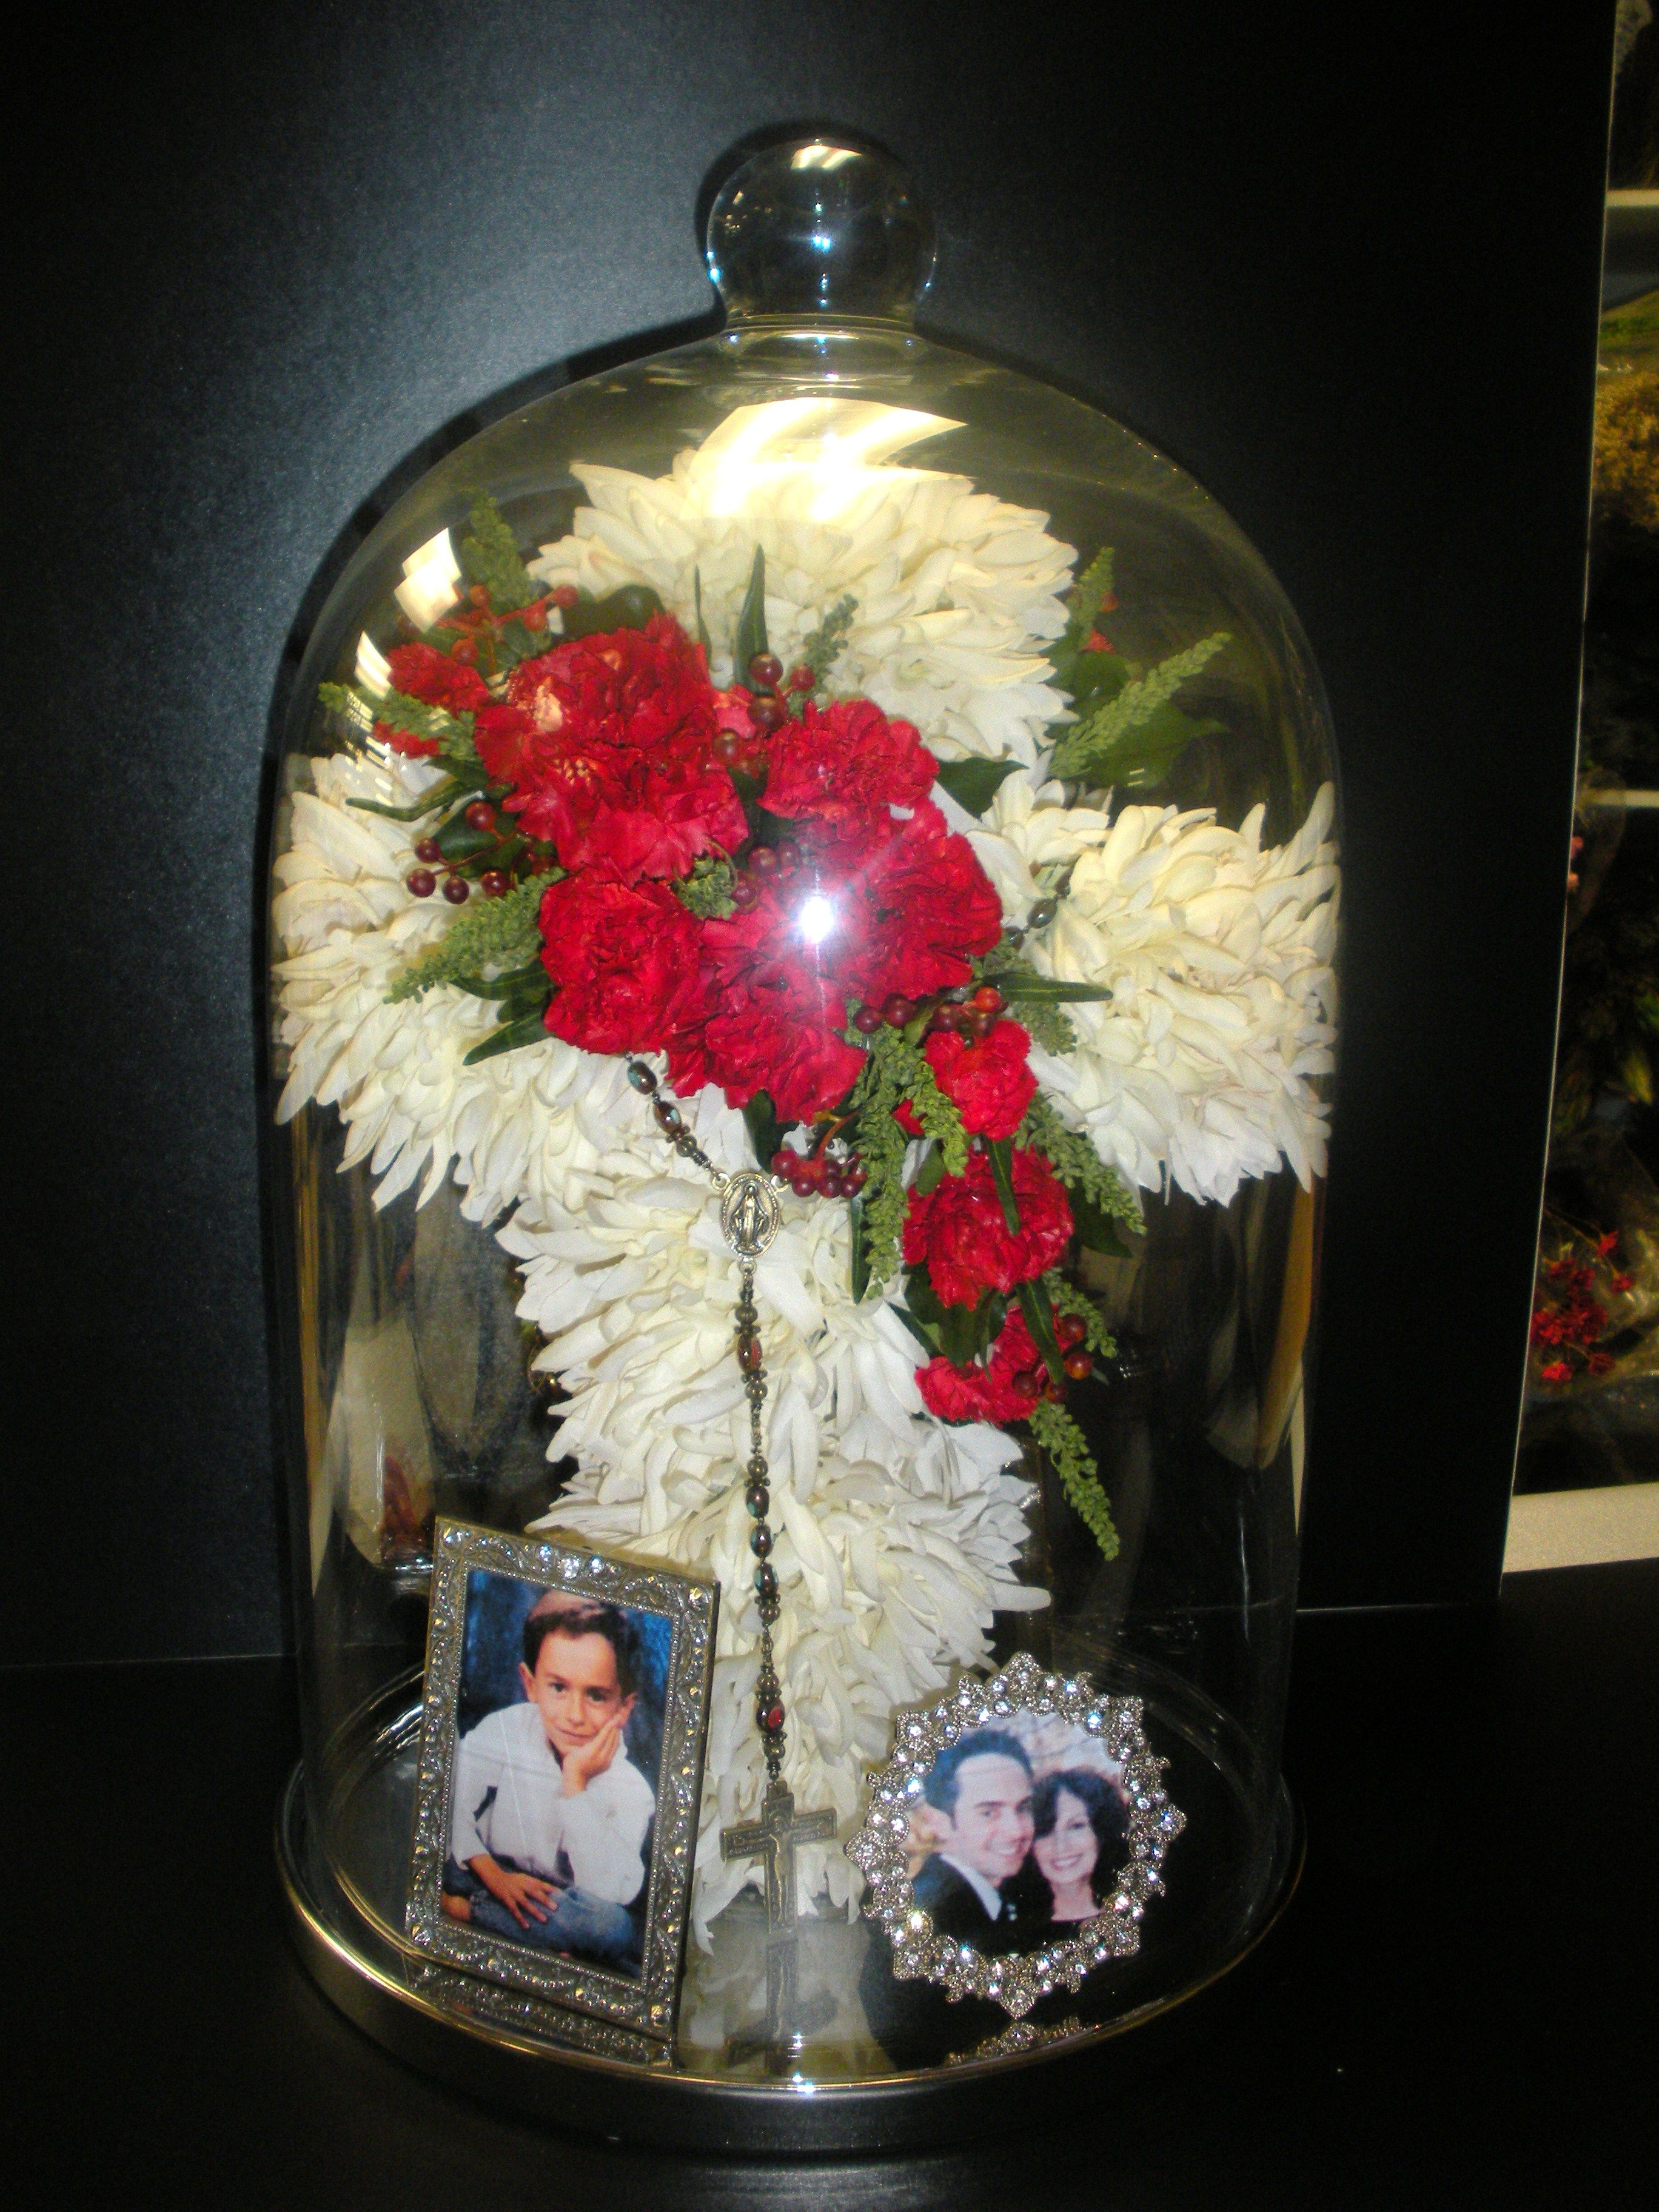 Preserved cross with rosary and photos in a glass cloche httpwww preserved cross with rosary and photos in a glass cloche httpwww izmirmasajfo